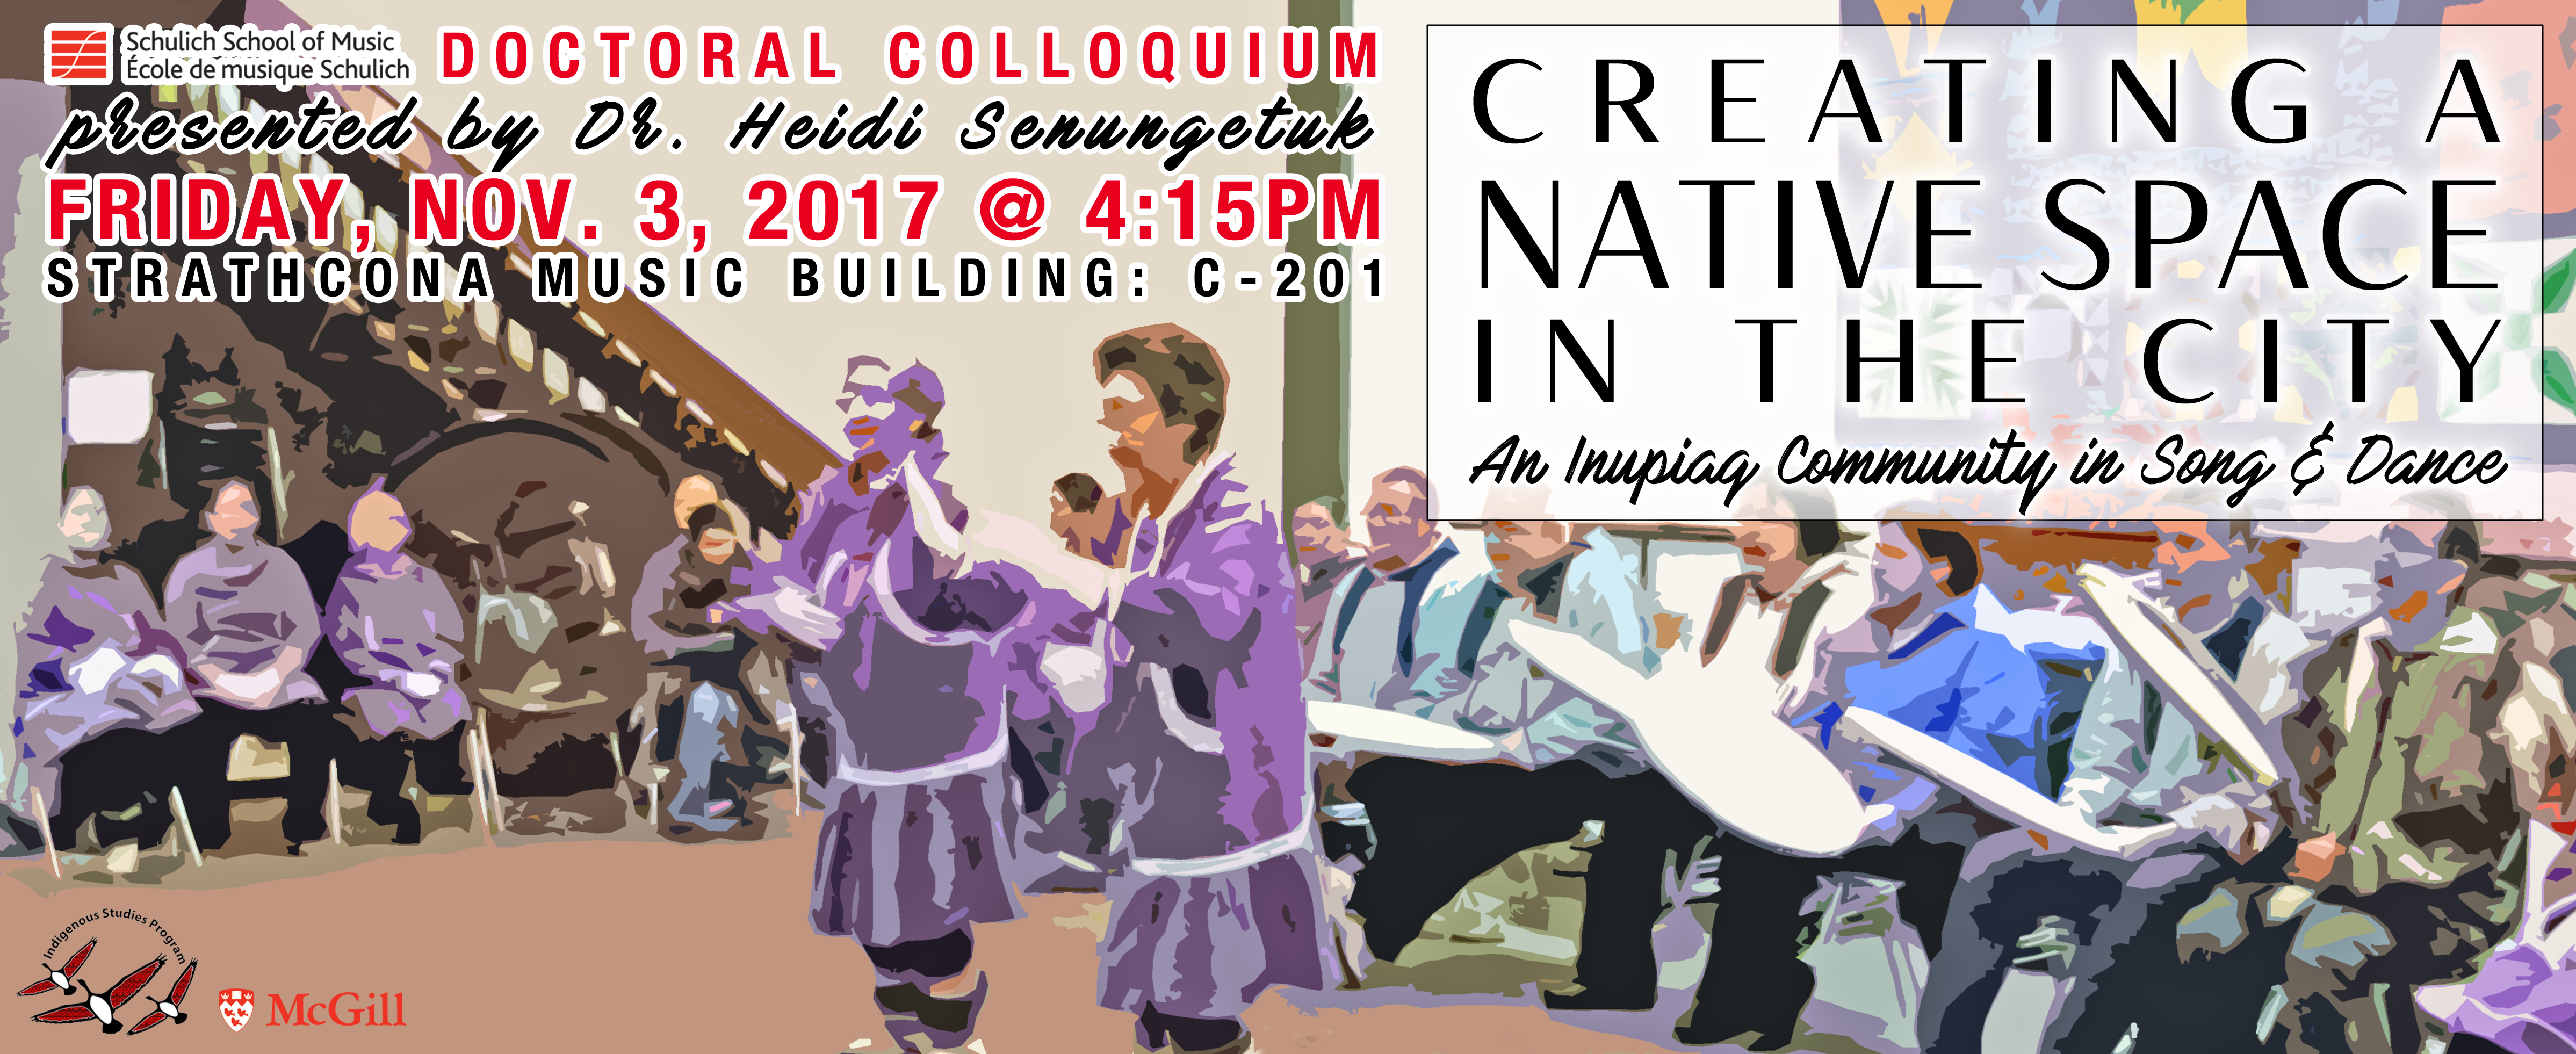 https://mcgill.ca/indigenous/channels/event/native-spaces-city-inupiaq-community-song-and-dance-presented-heidi-senungetuk-schulich-school-music-272461